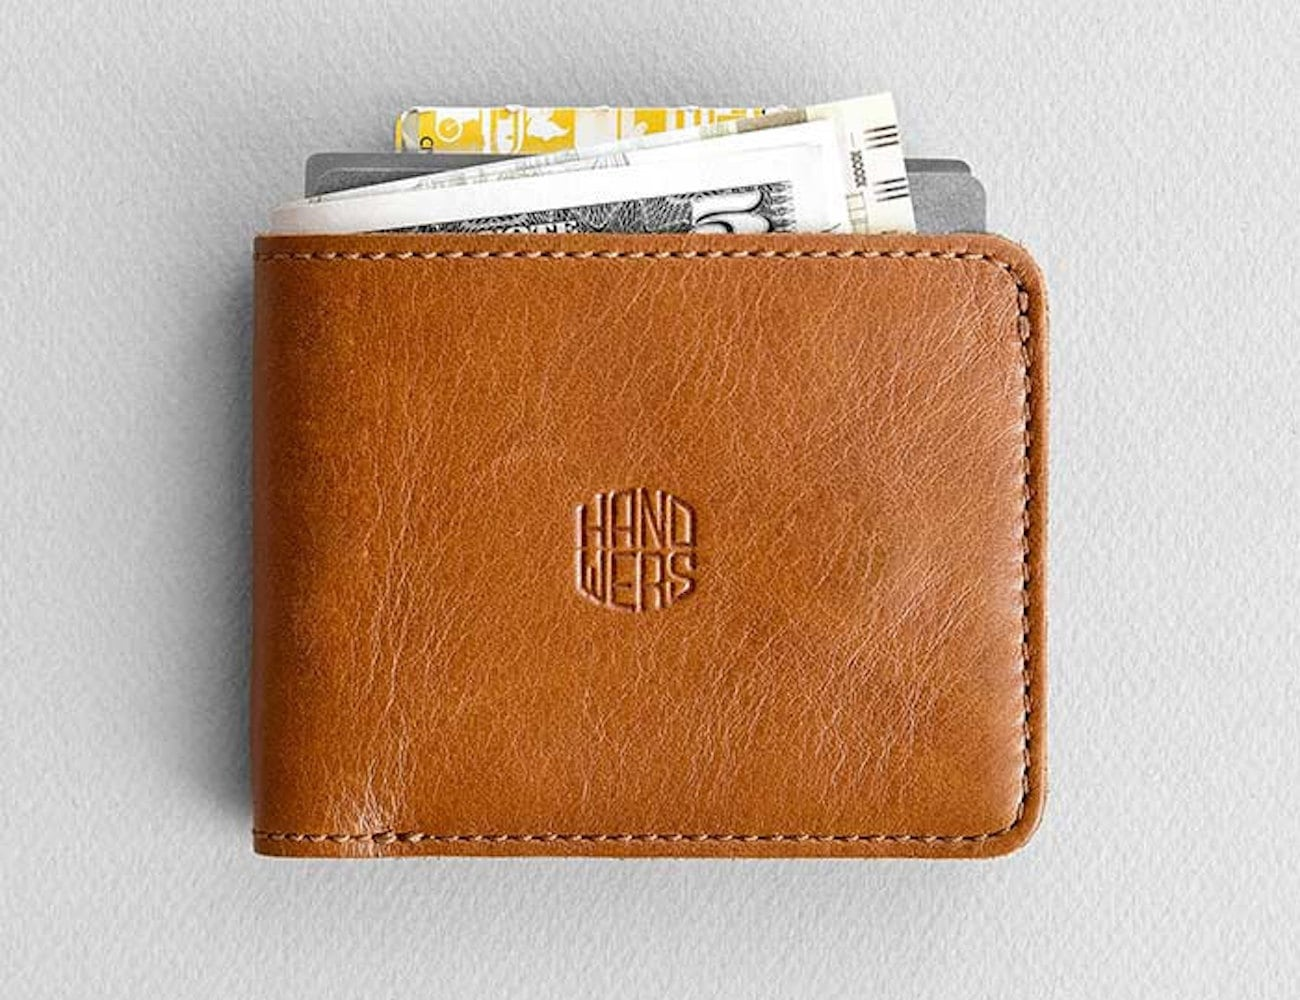 HANDWERS Compact Leather Wallet